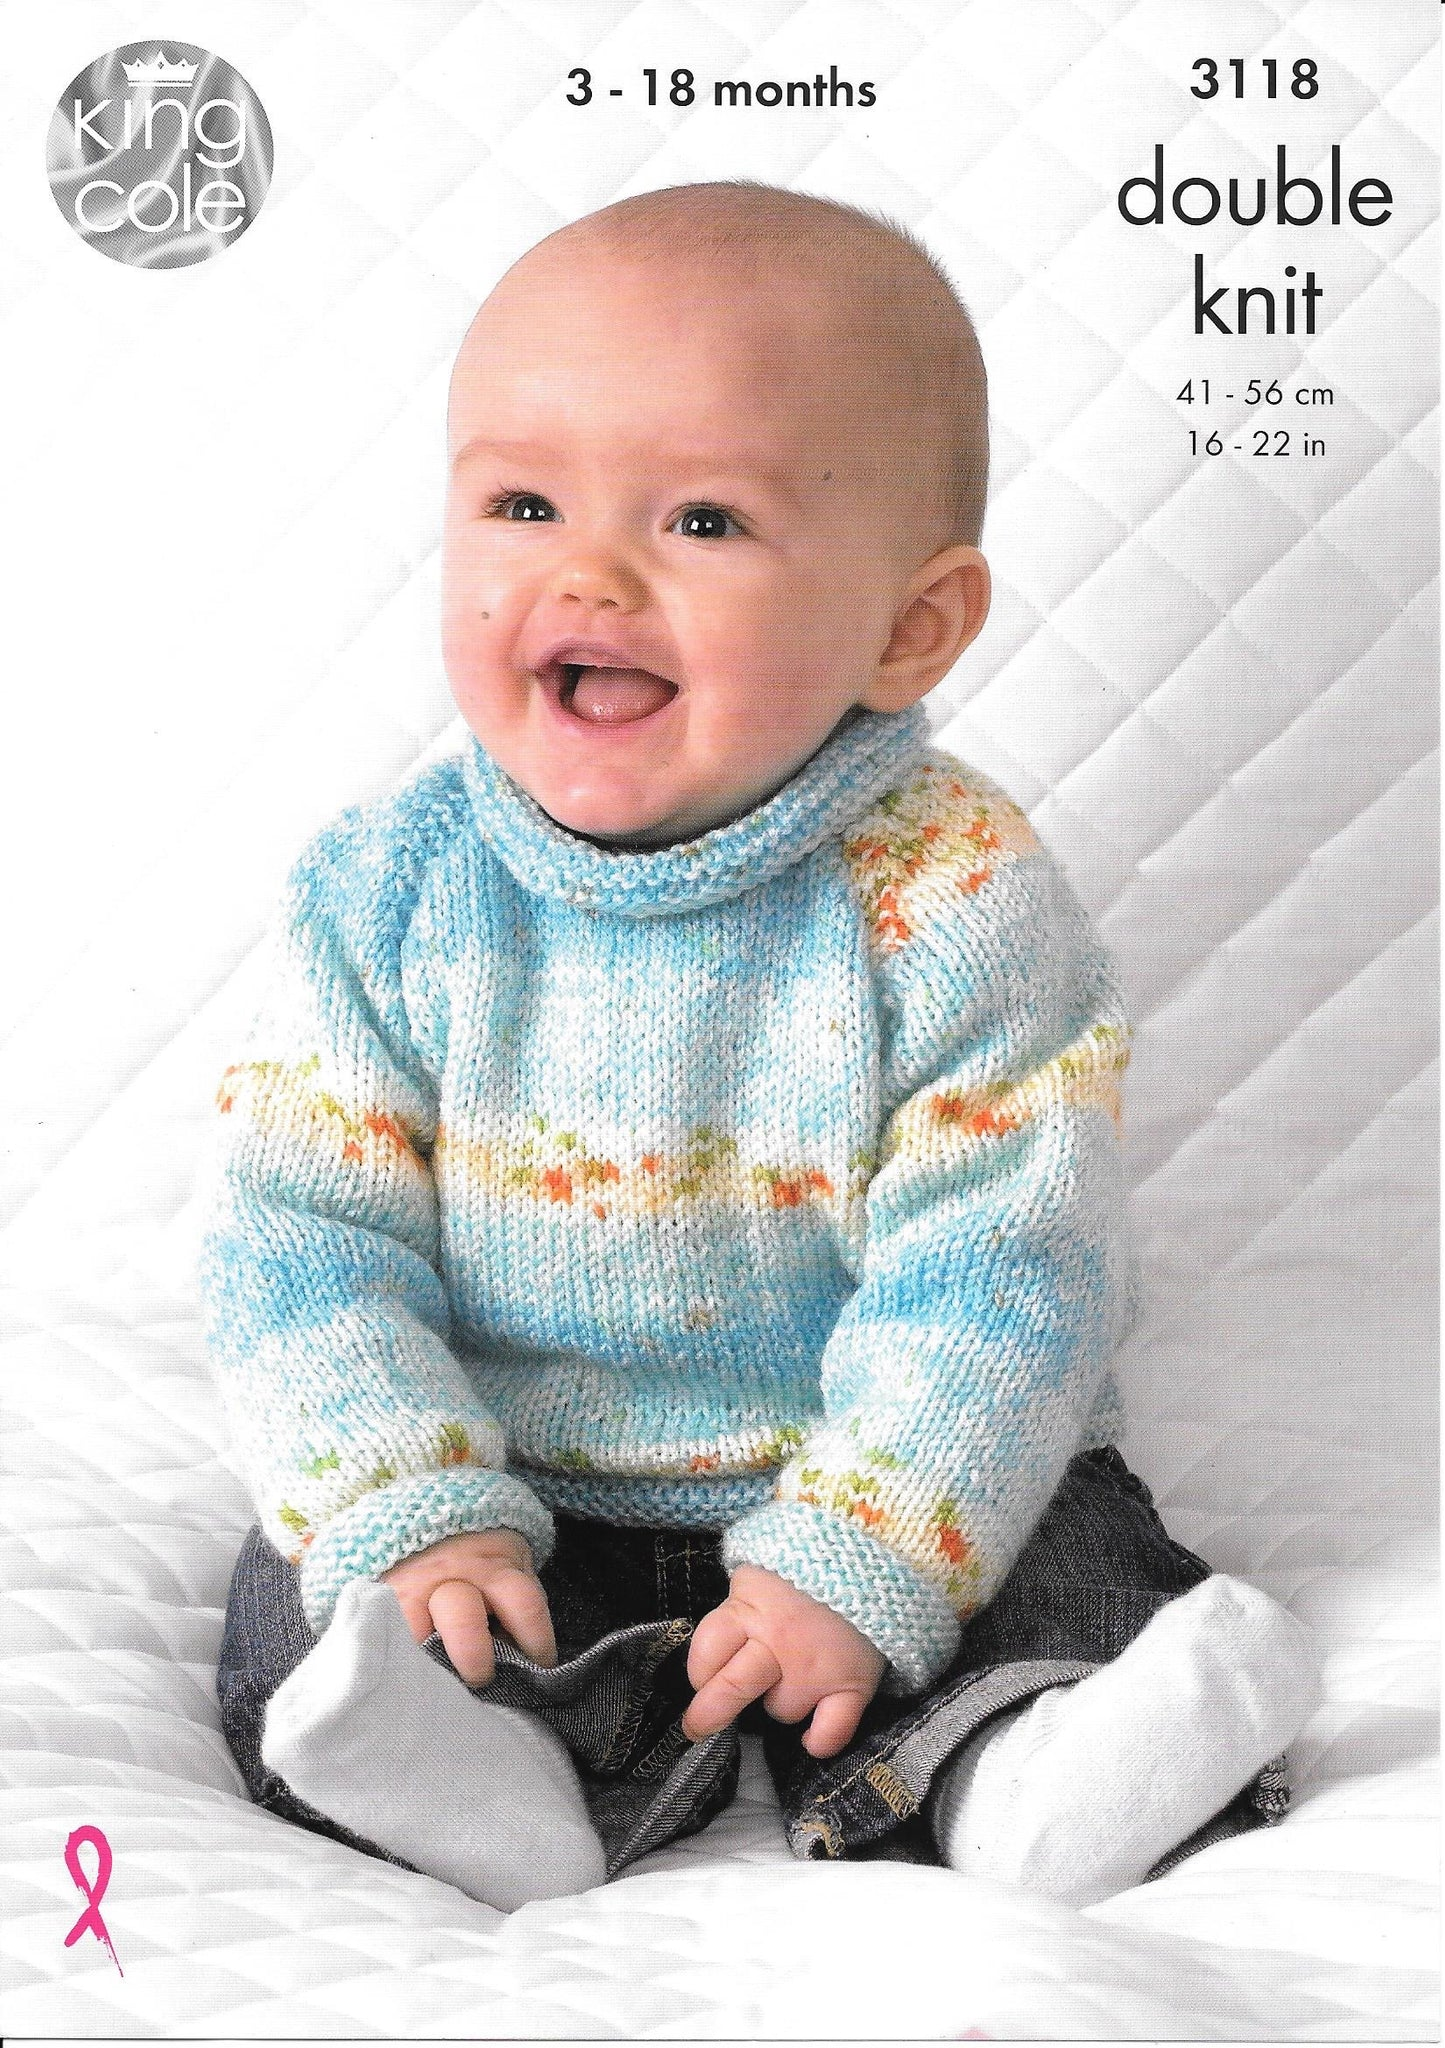 3118 King Cole Baby dk baby sweater and cardigan knitting pattern